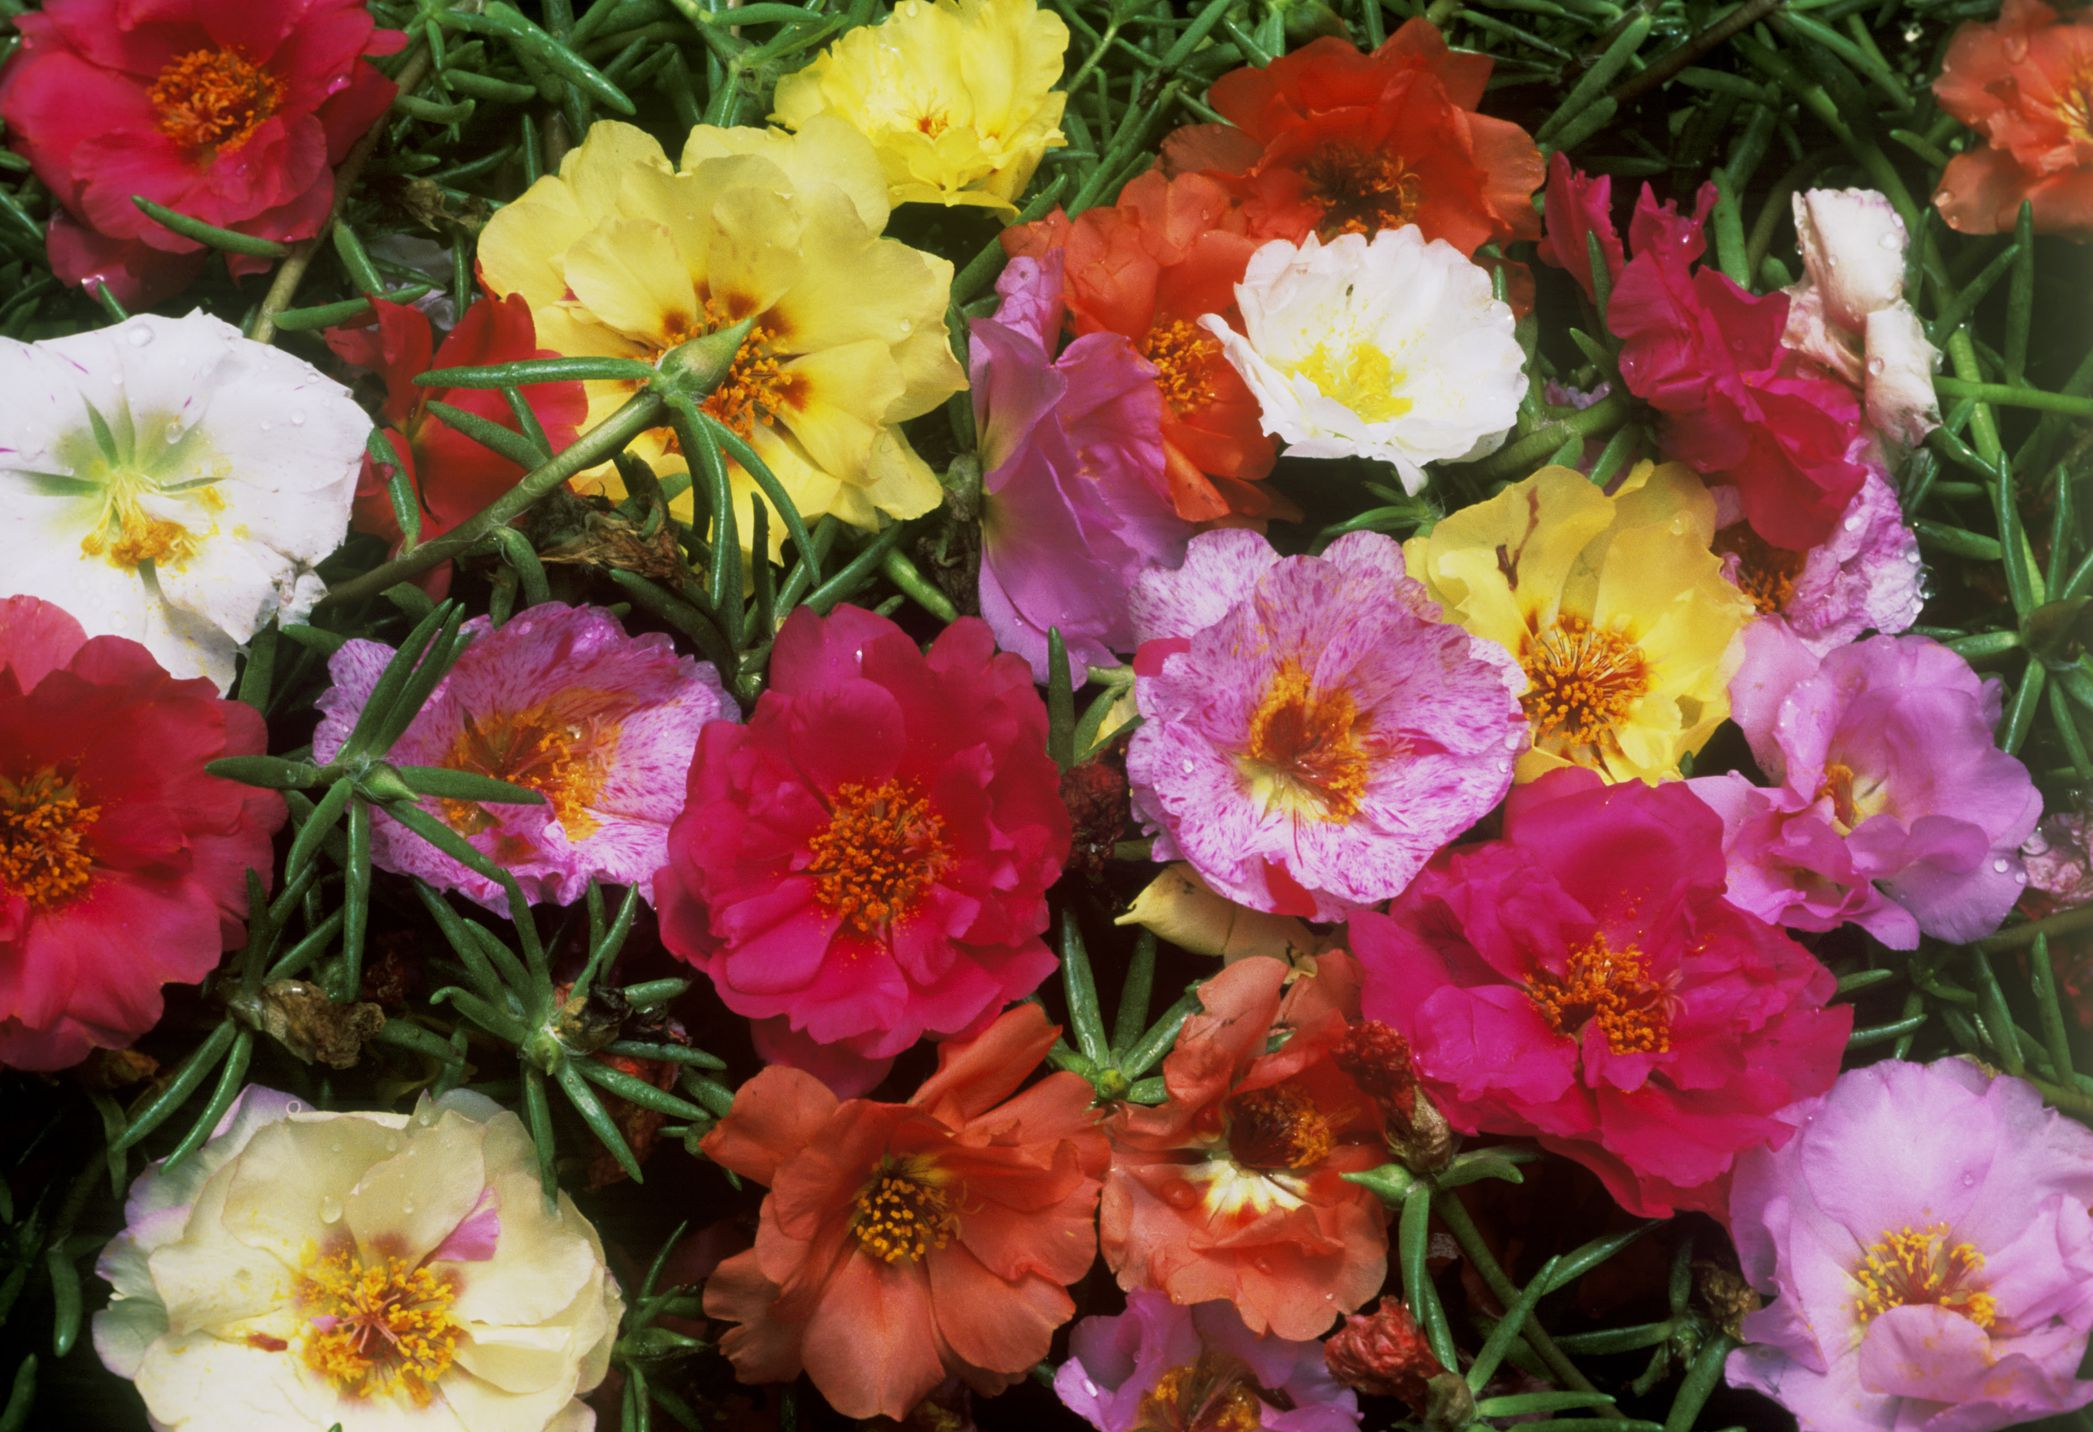 Growing Portulaca The Moss Rose Flower